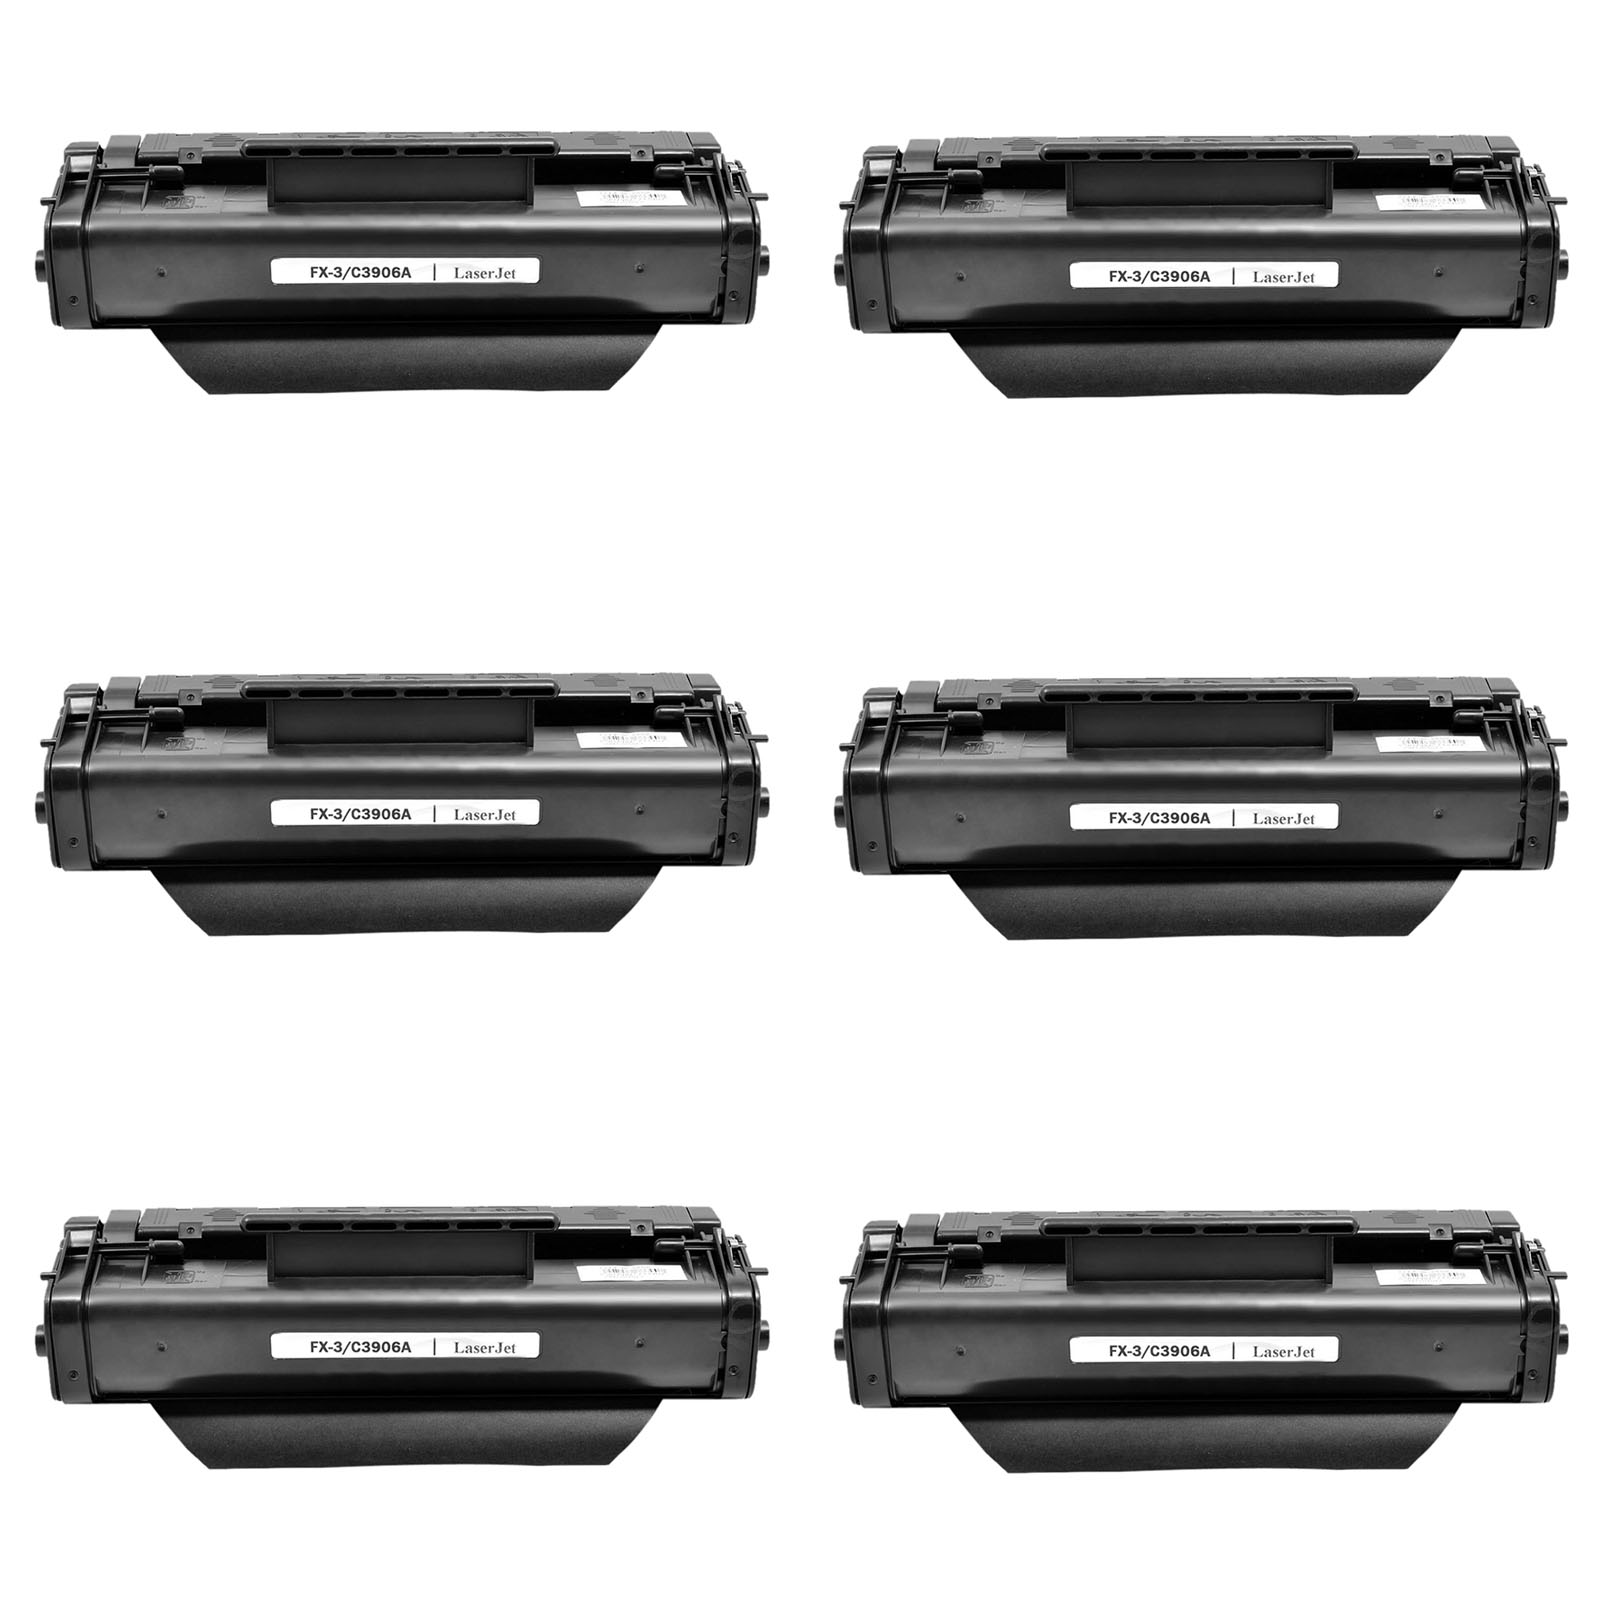 6 PK Black Toner Cartridge aptible for HP 06A C3906A LaserJet 3100se 3150se